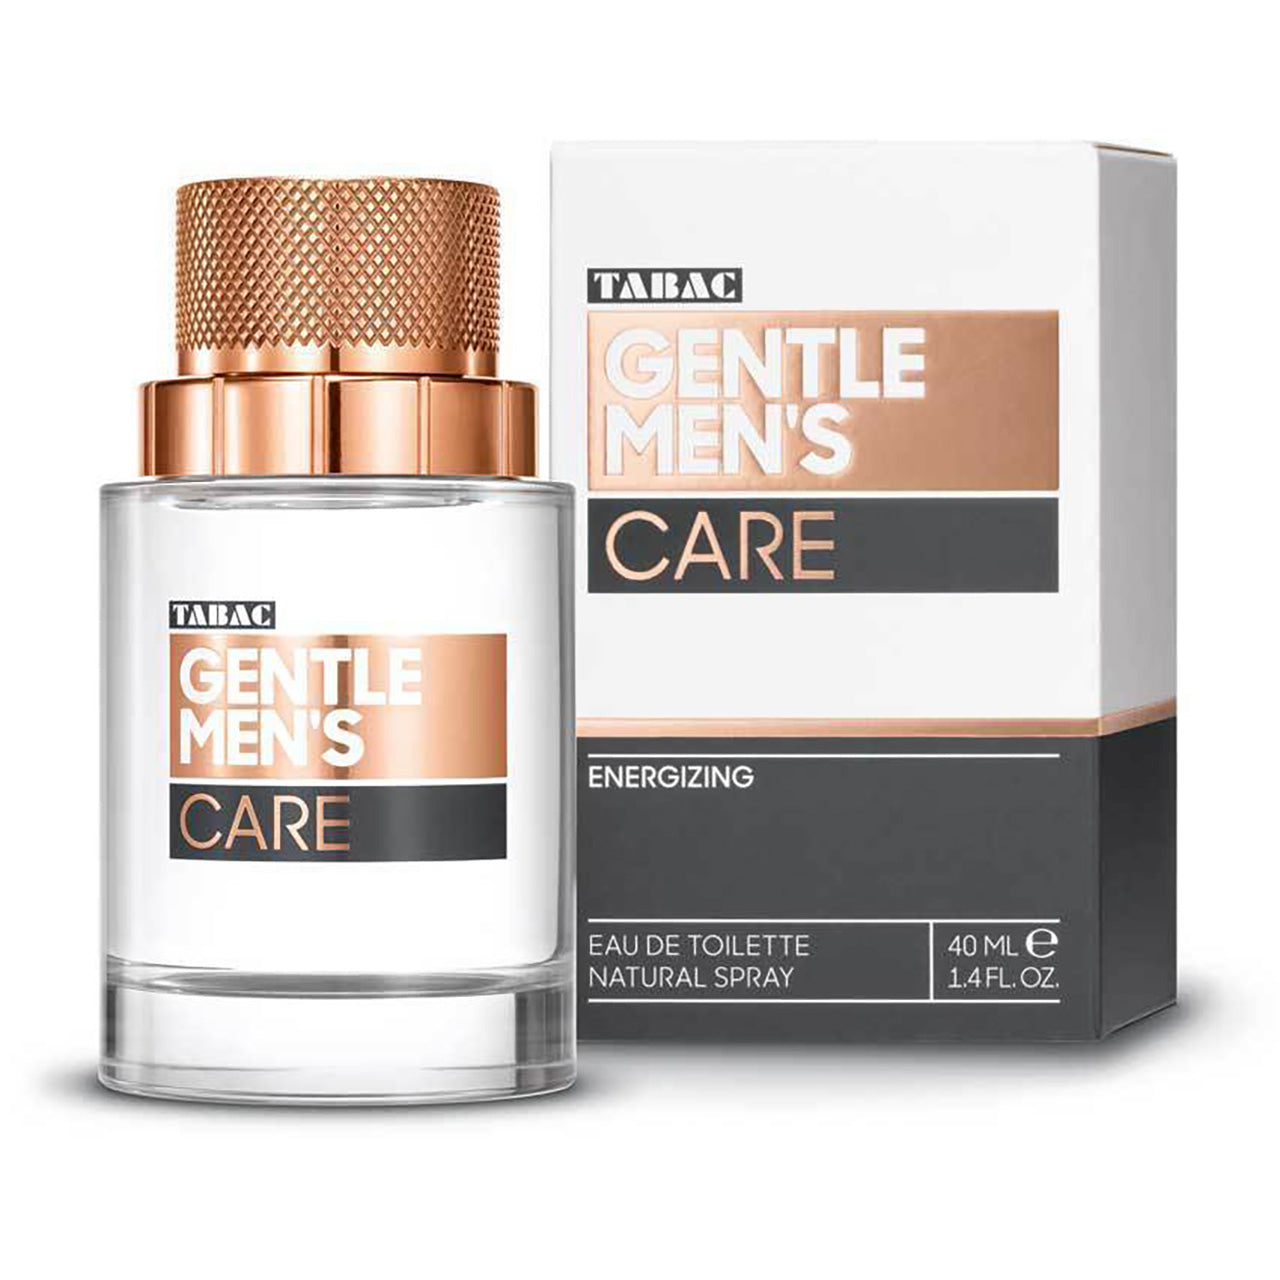 Tabac Gentlemans Care EDT